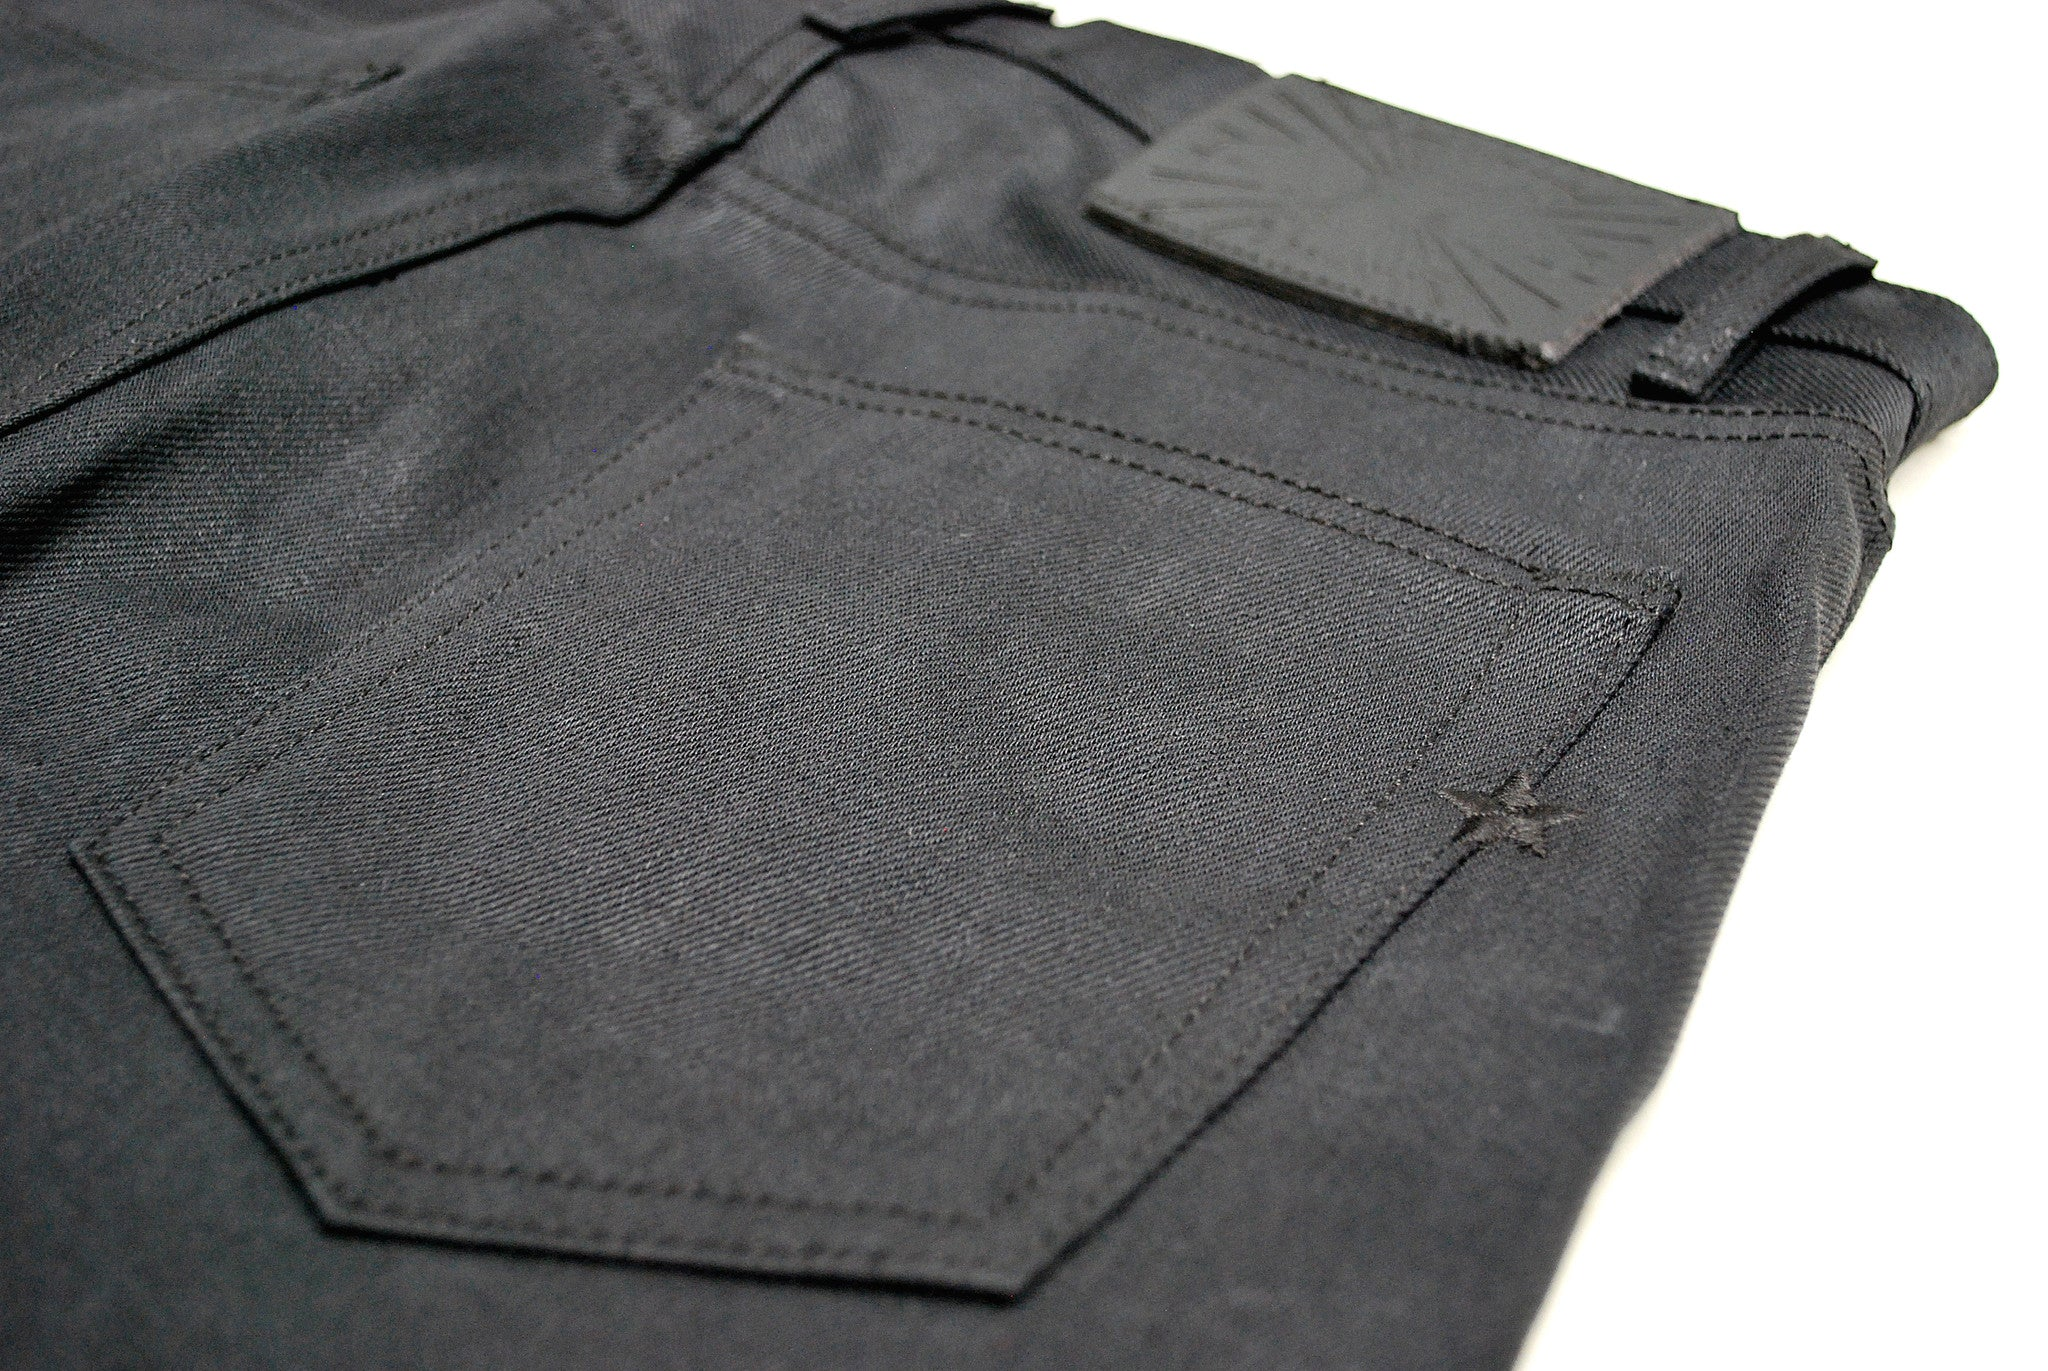 The Skeleton Skinny 12oz Double Black Cone Mills Selvage